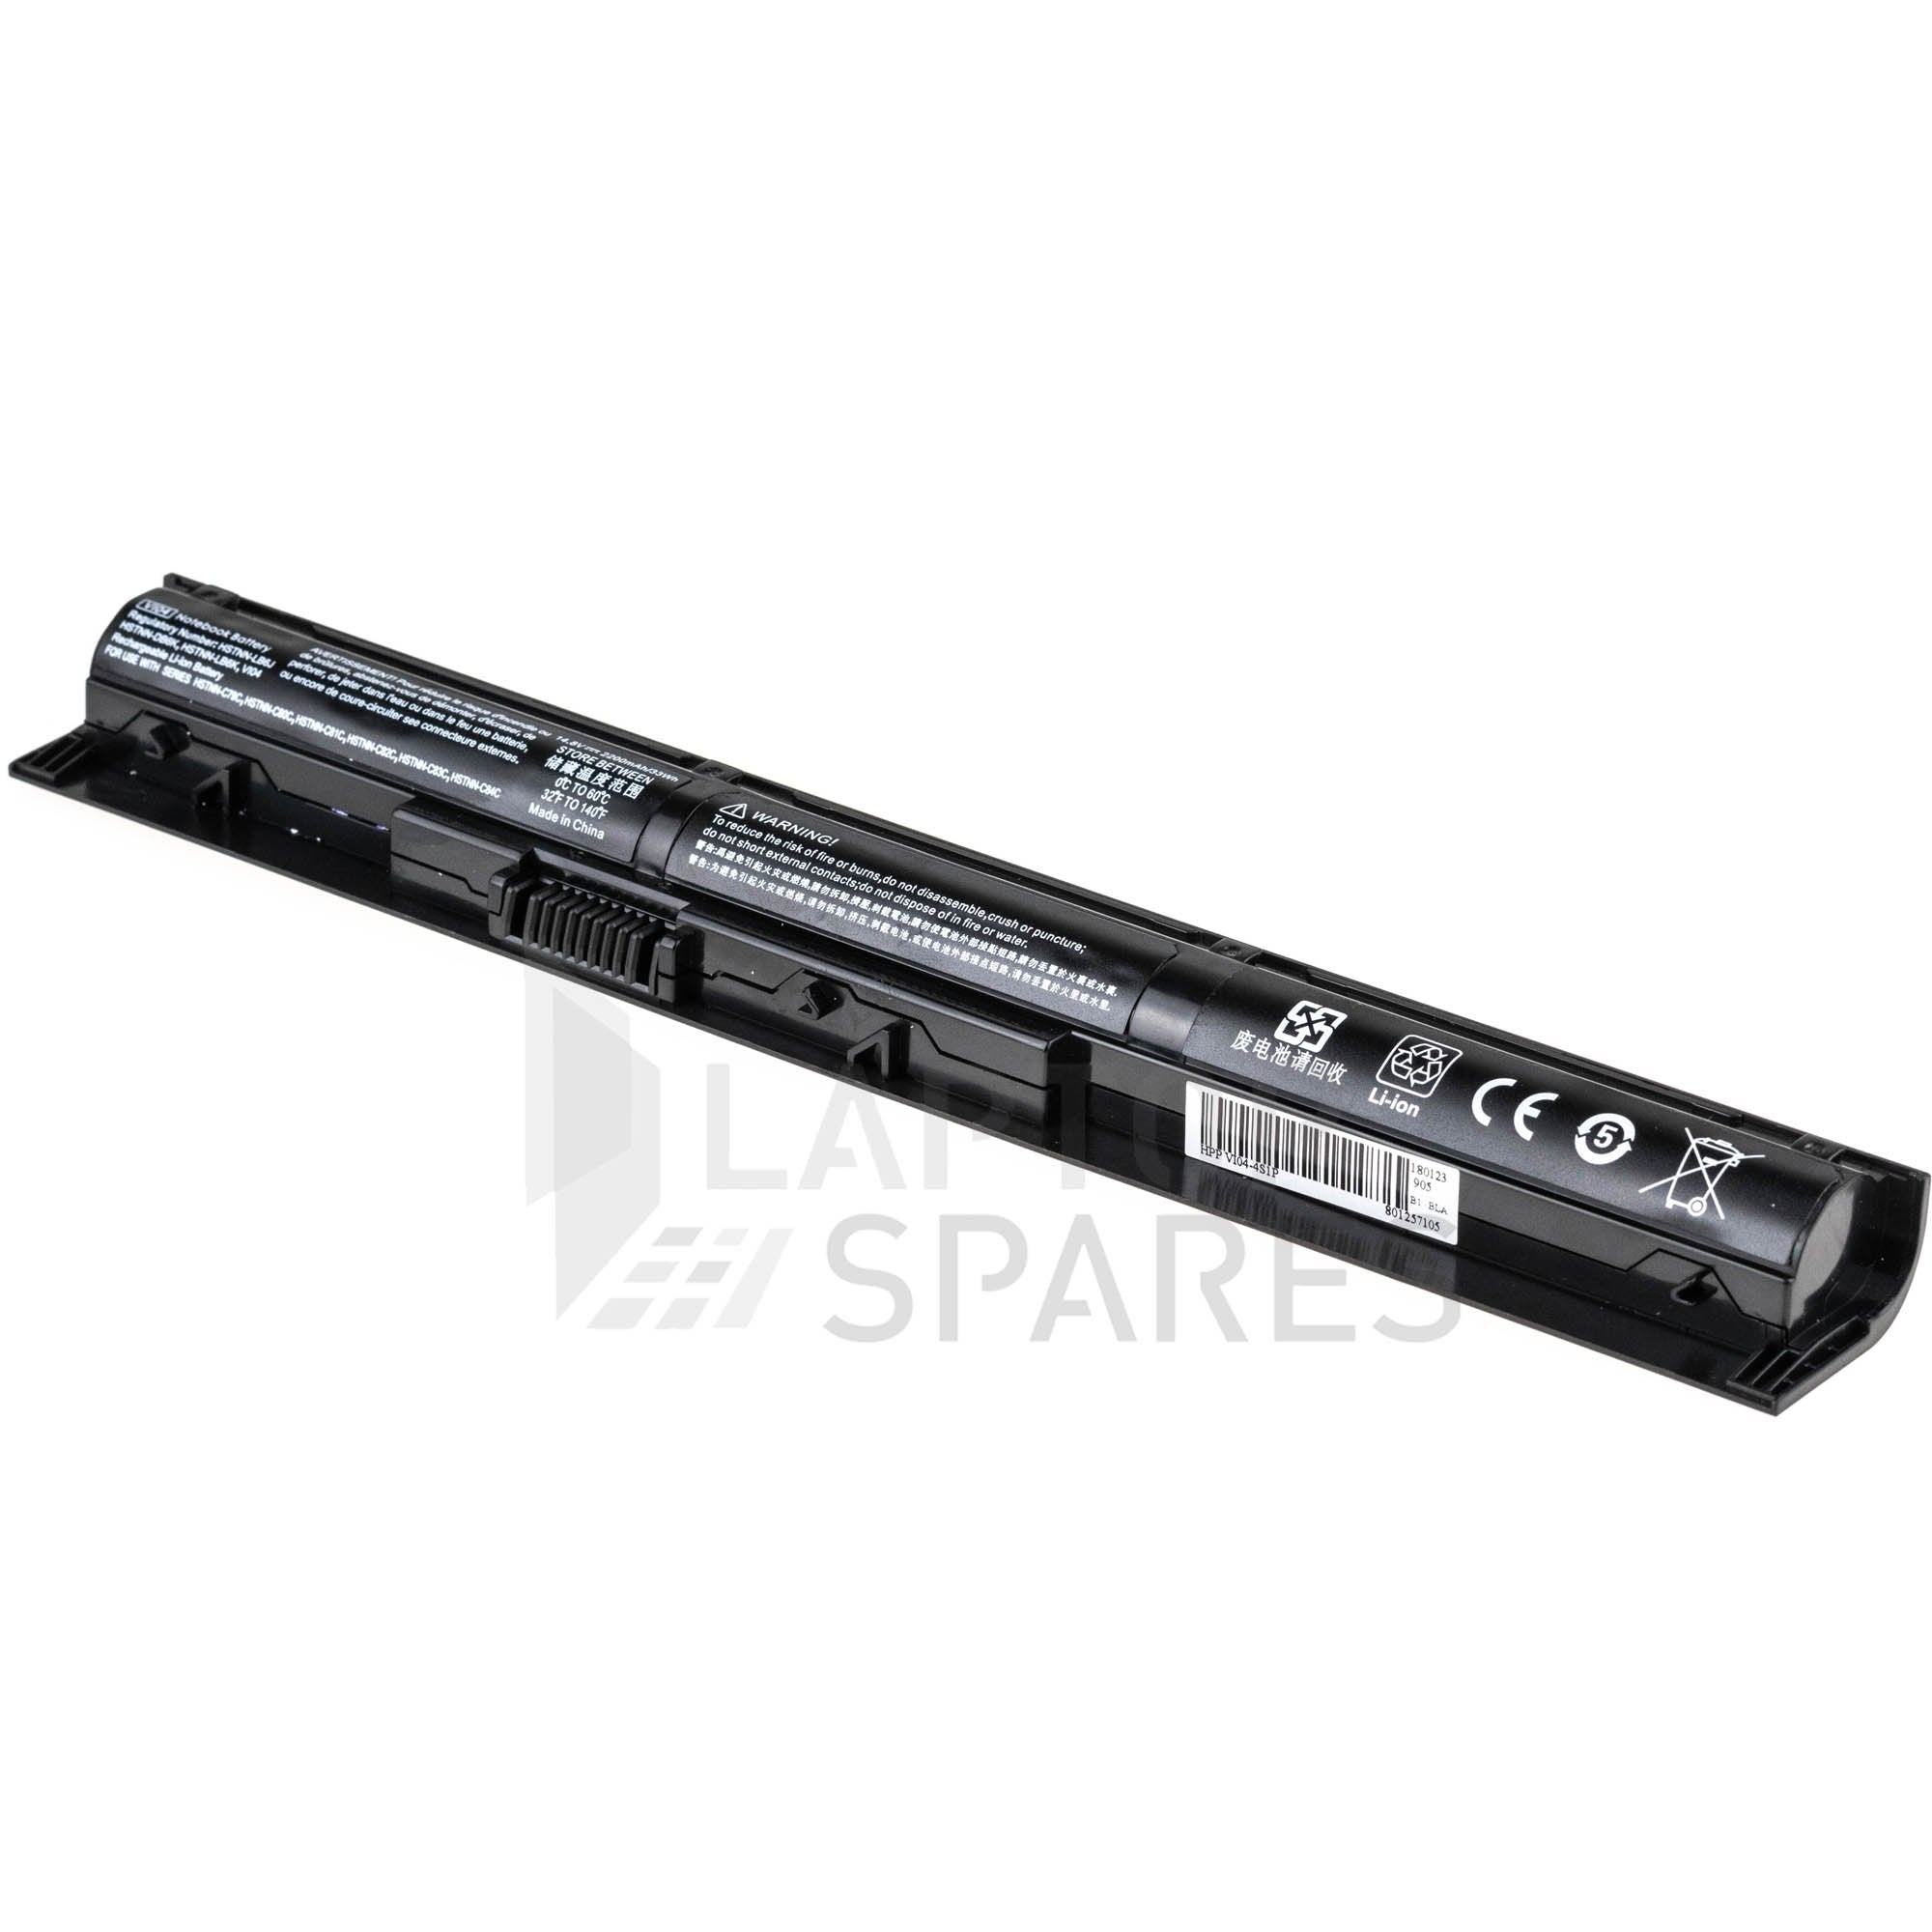 HP Pavilion 17f053ca 17f053us 17f061us 17f065us   2200mAh 4 Cell Battery